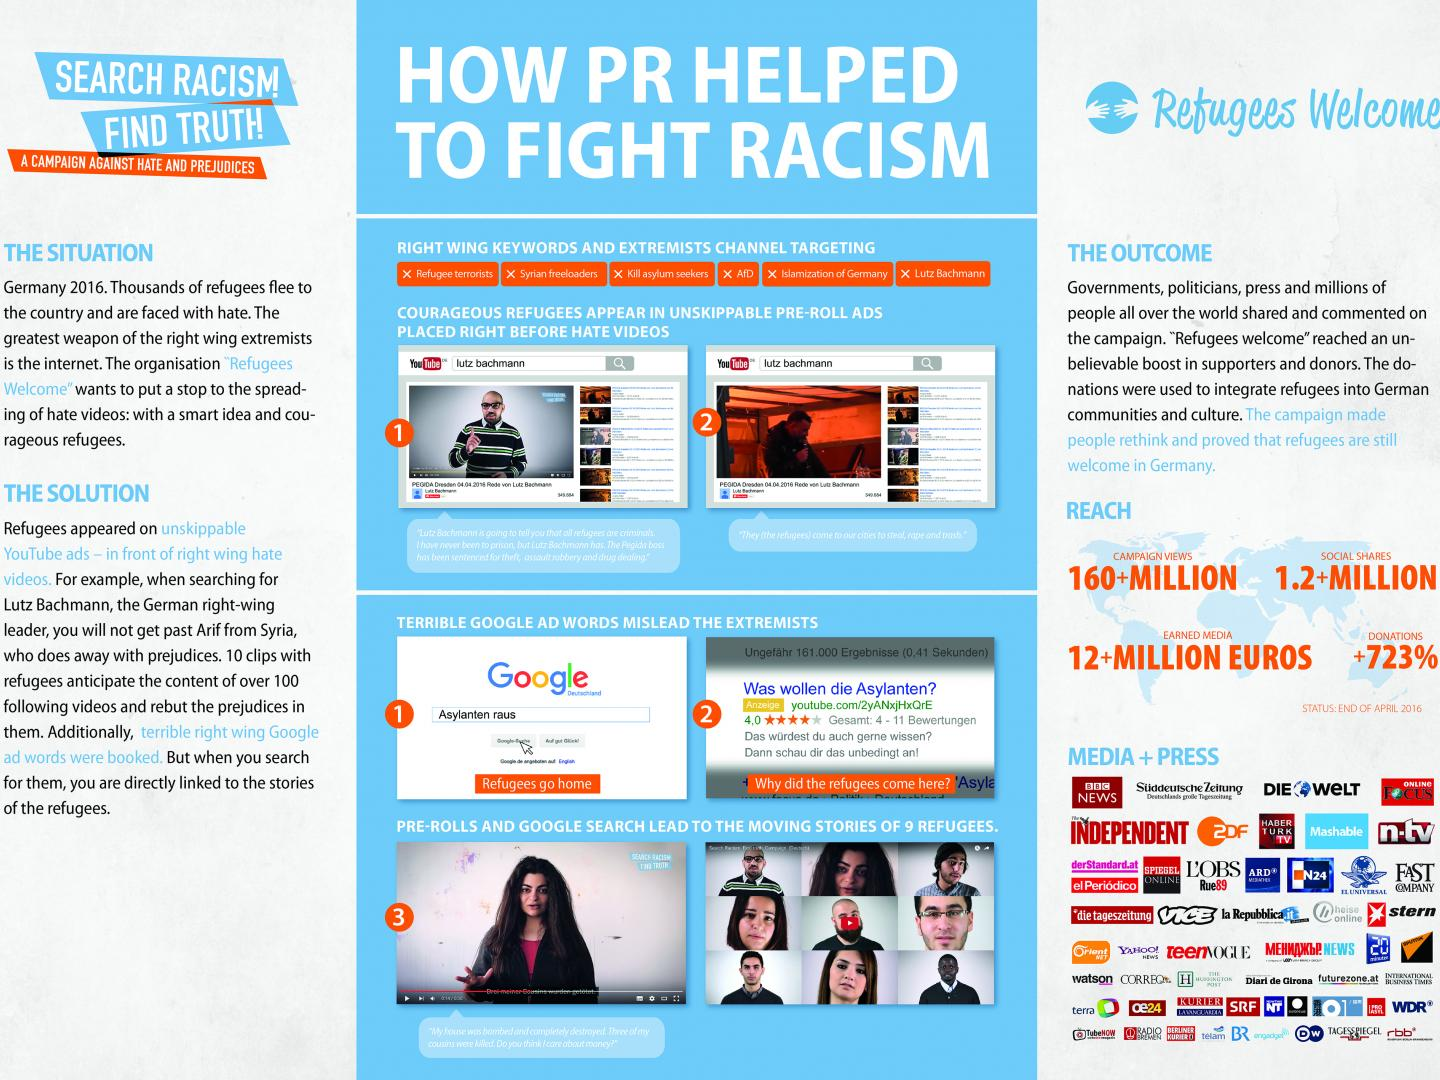 Search racism. Find truth. Thumbnail